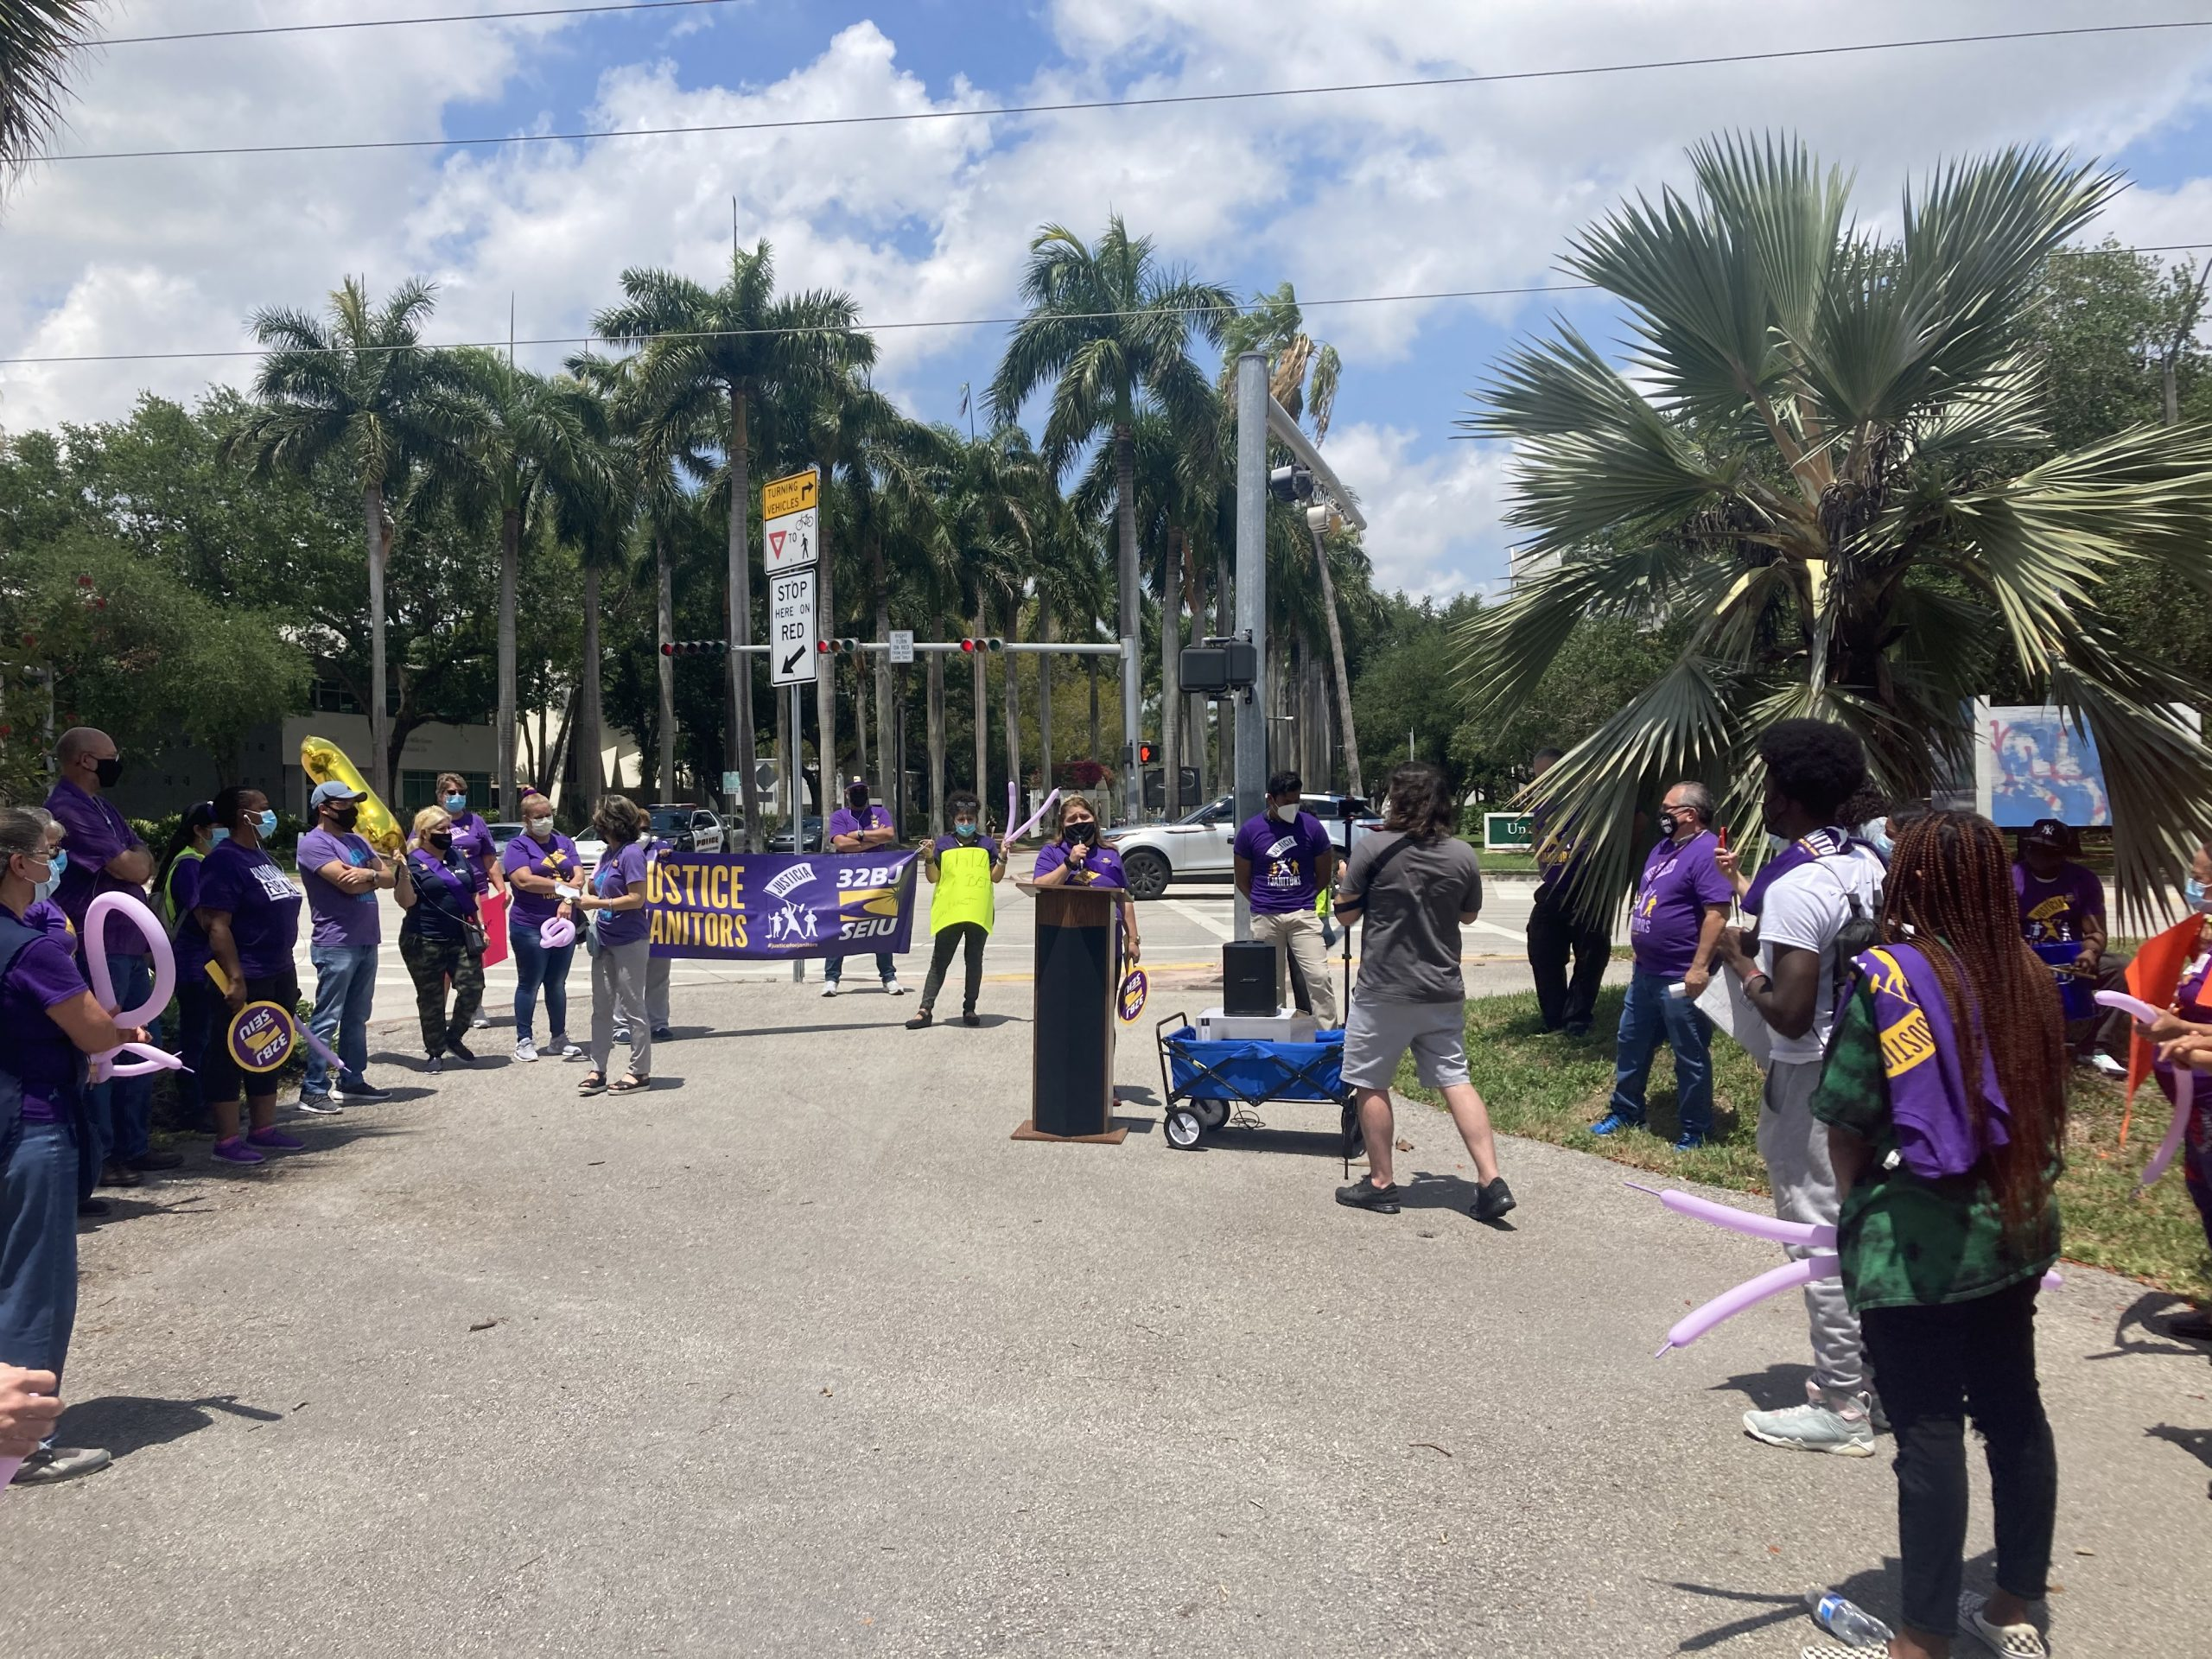 key-um-employees-gather-before-contract-negotiations-to-protest-against-low-wages